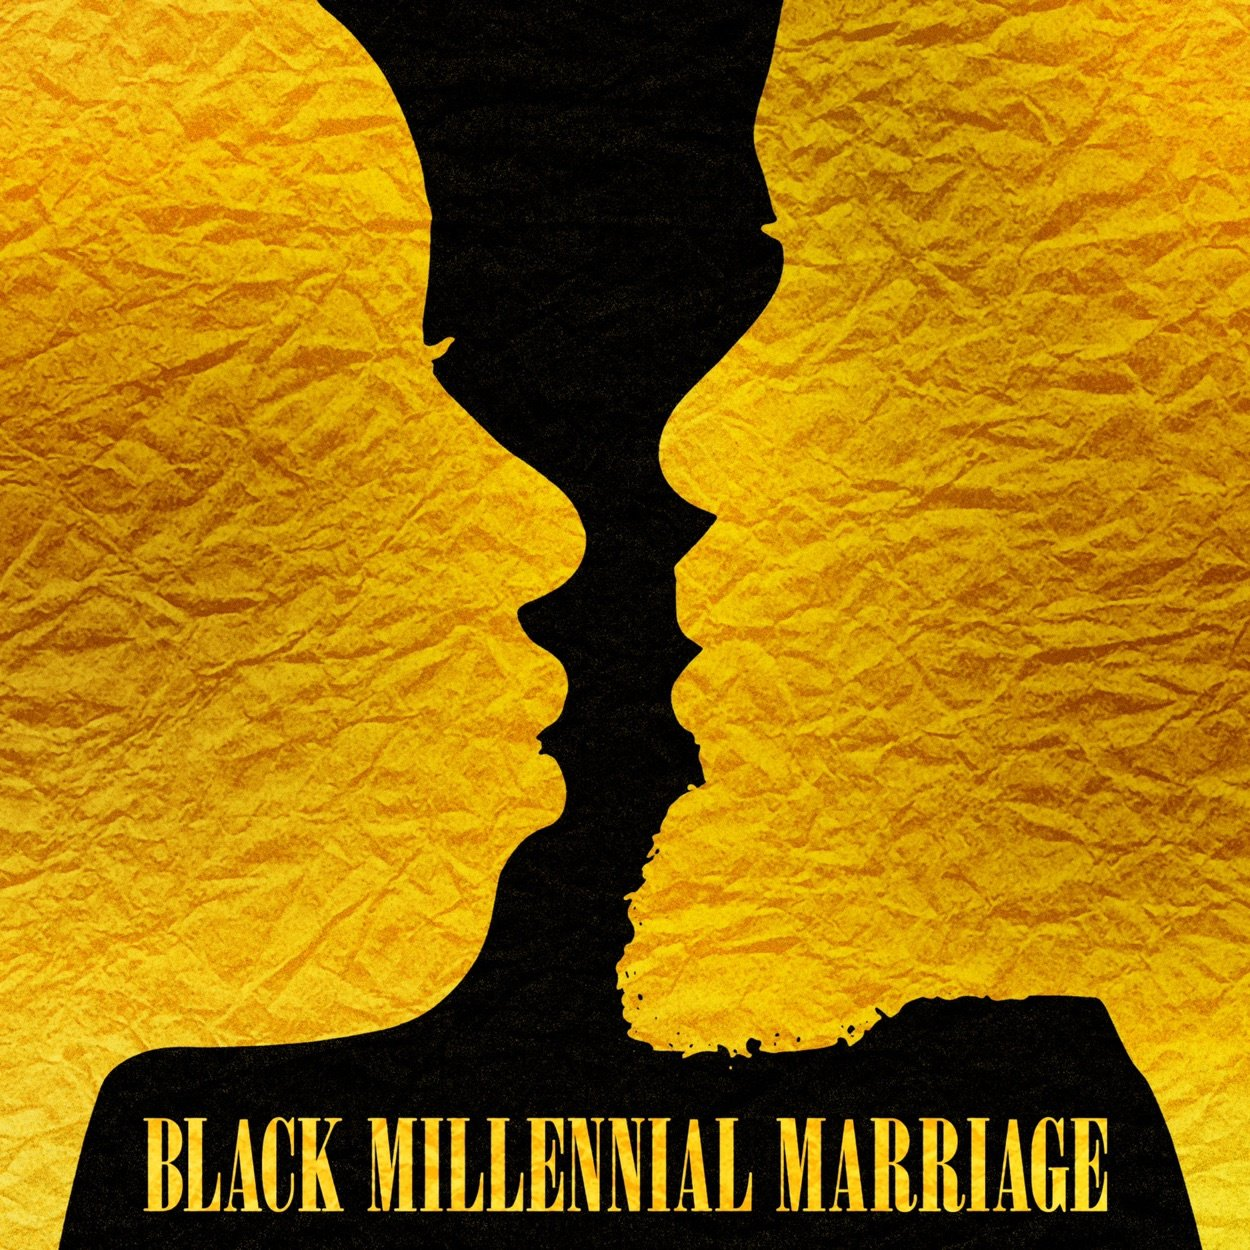 Black Millennial Marriage